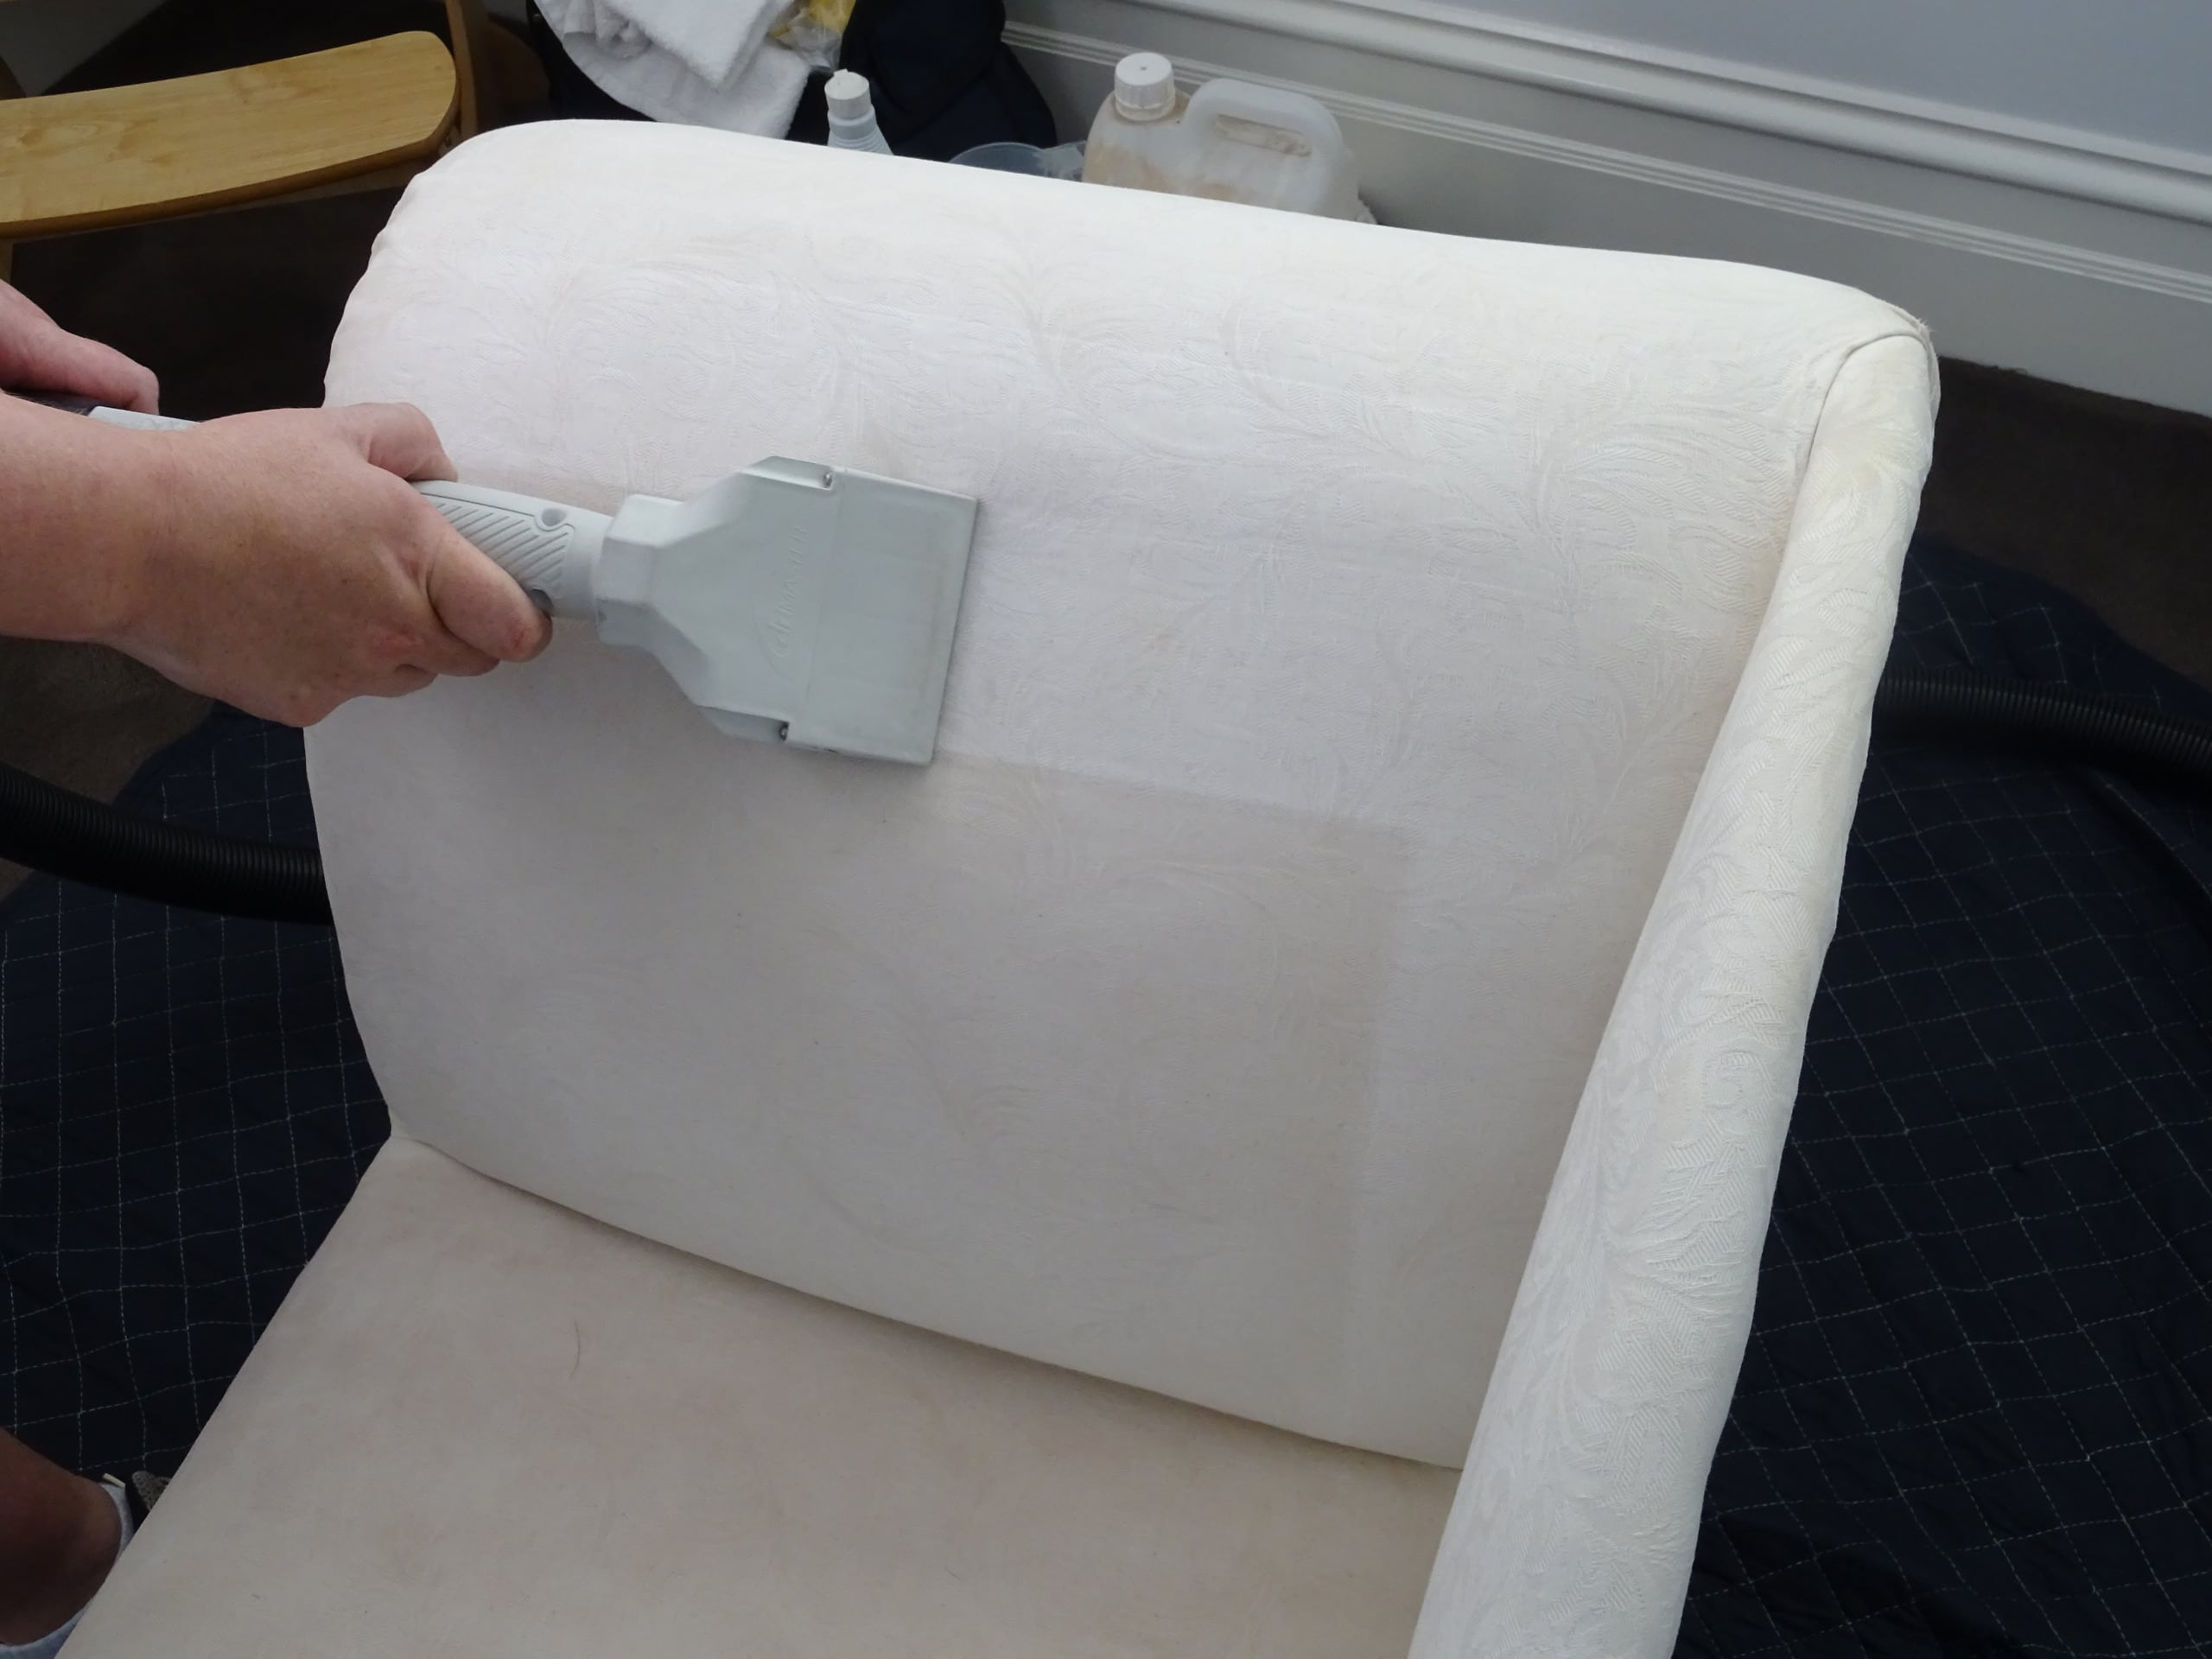 Upholstery cleaning Melbourne a Haitian cotton chaise with a low moisture upholstery steam cleaning tool